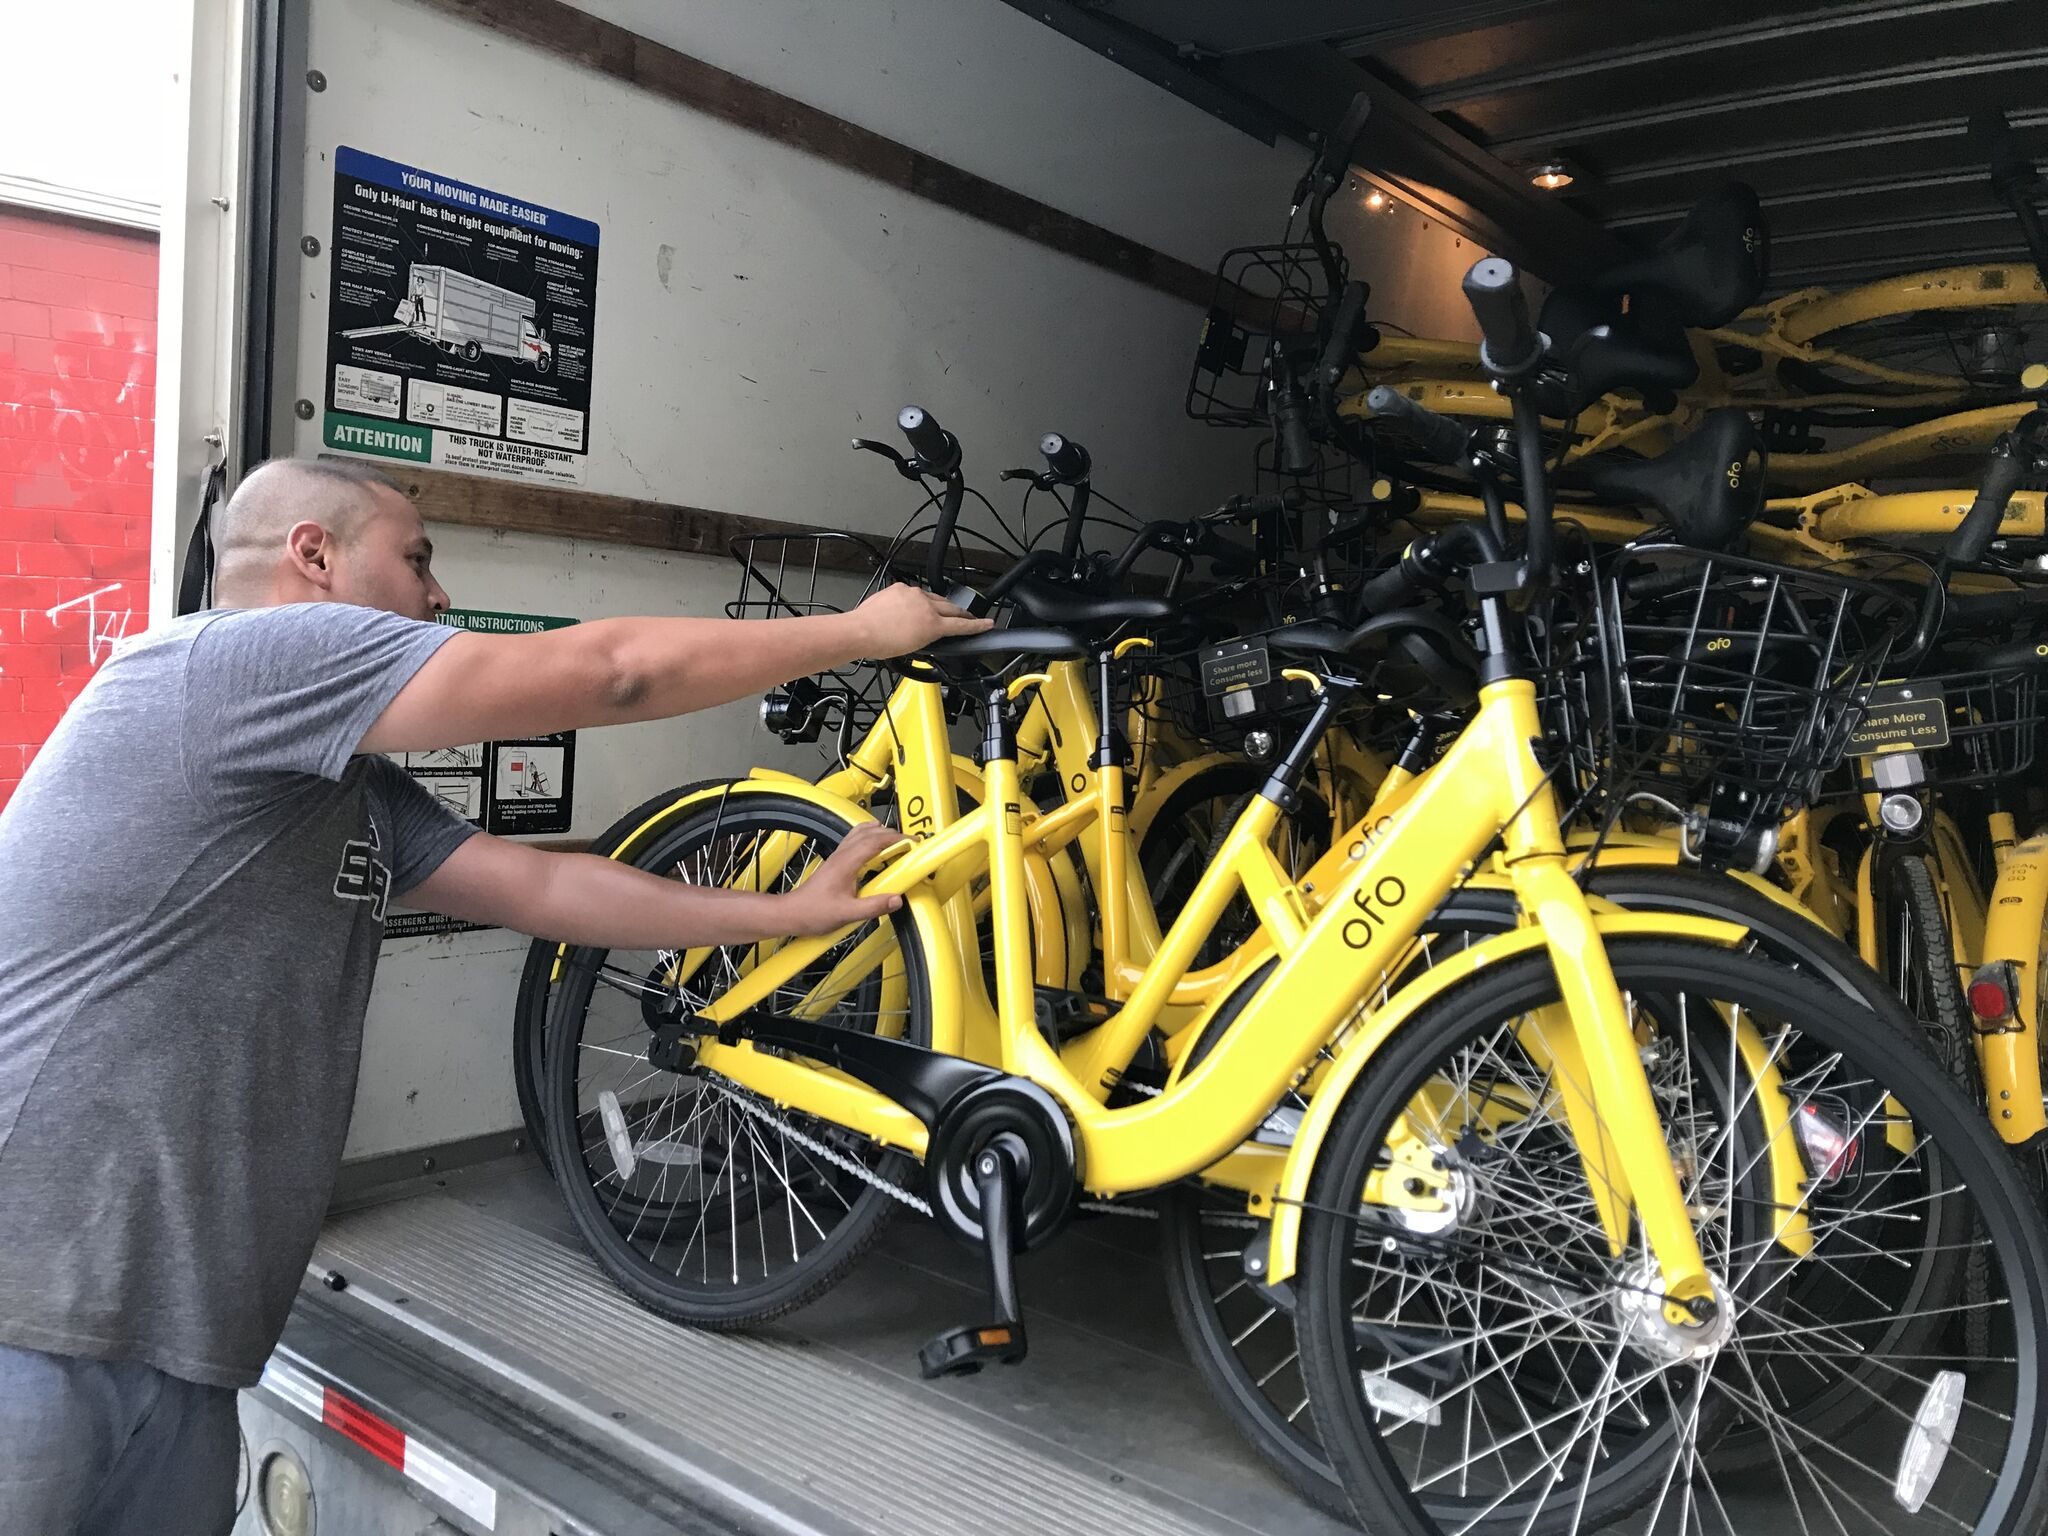 a photo of a man loading a bike into a truck